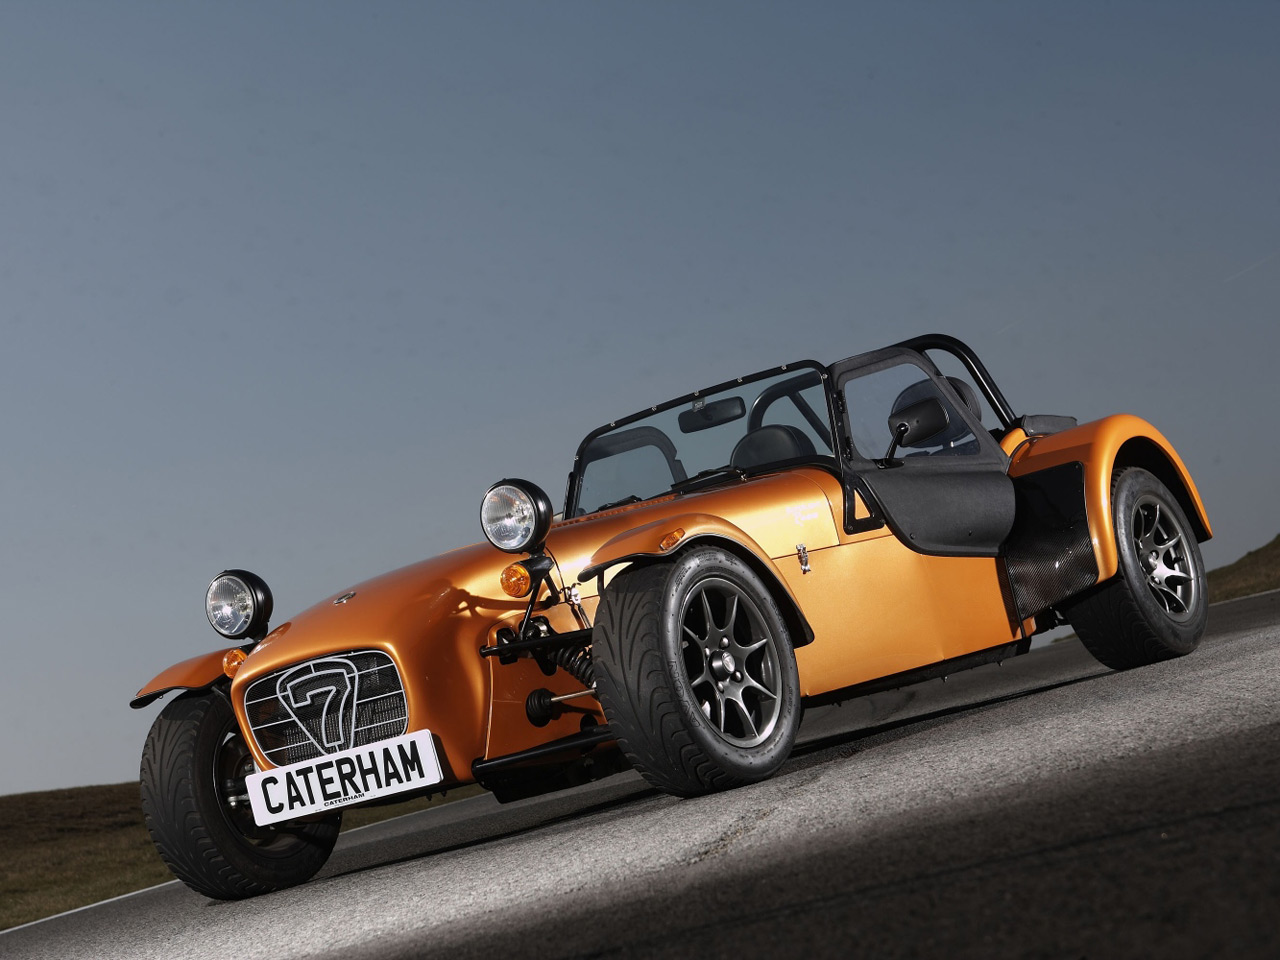 1992 Caterham Super 7 #9